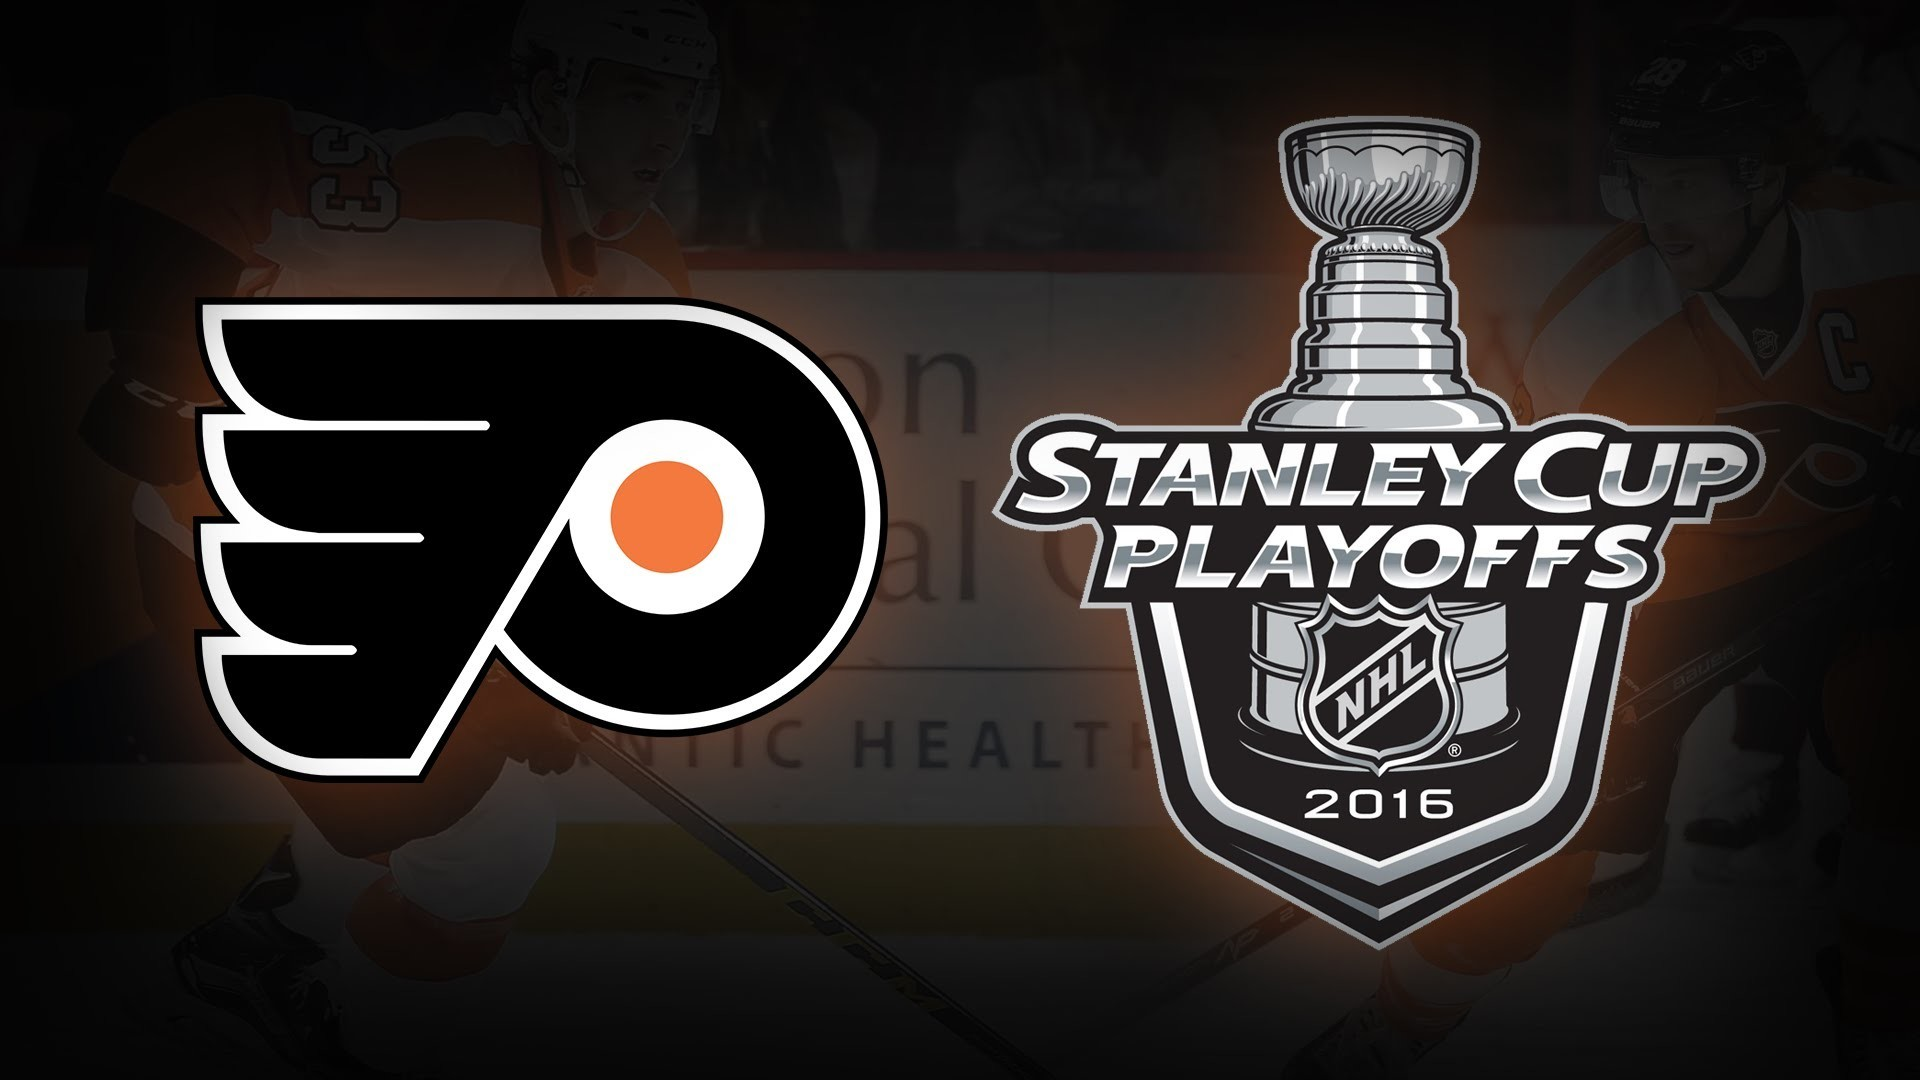 Phillies wallpaper 2018 60 images - Philadelphia flyers wallpaper ...